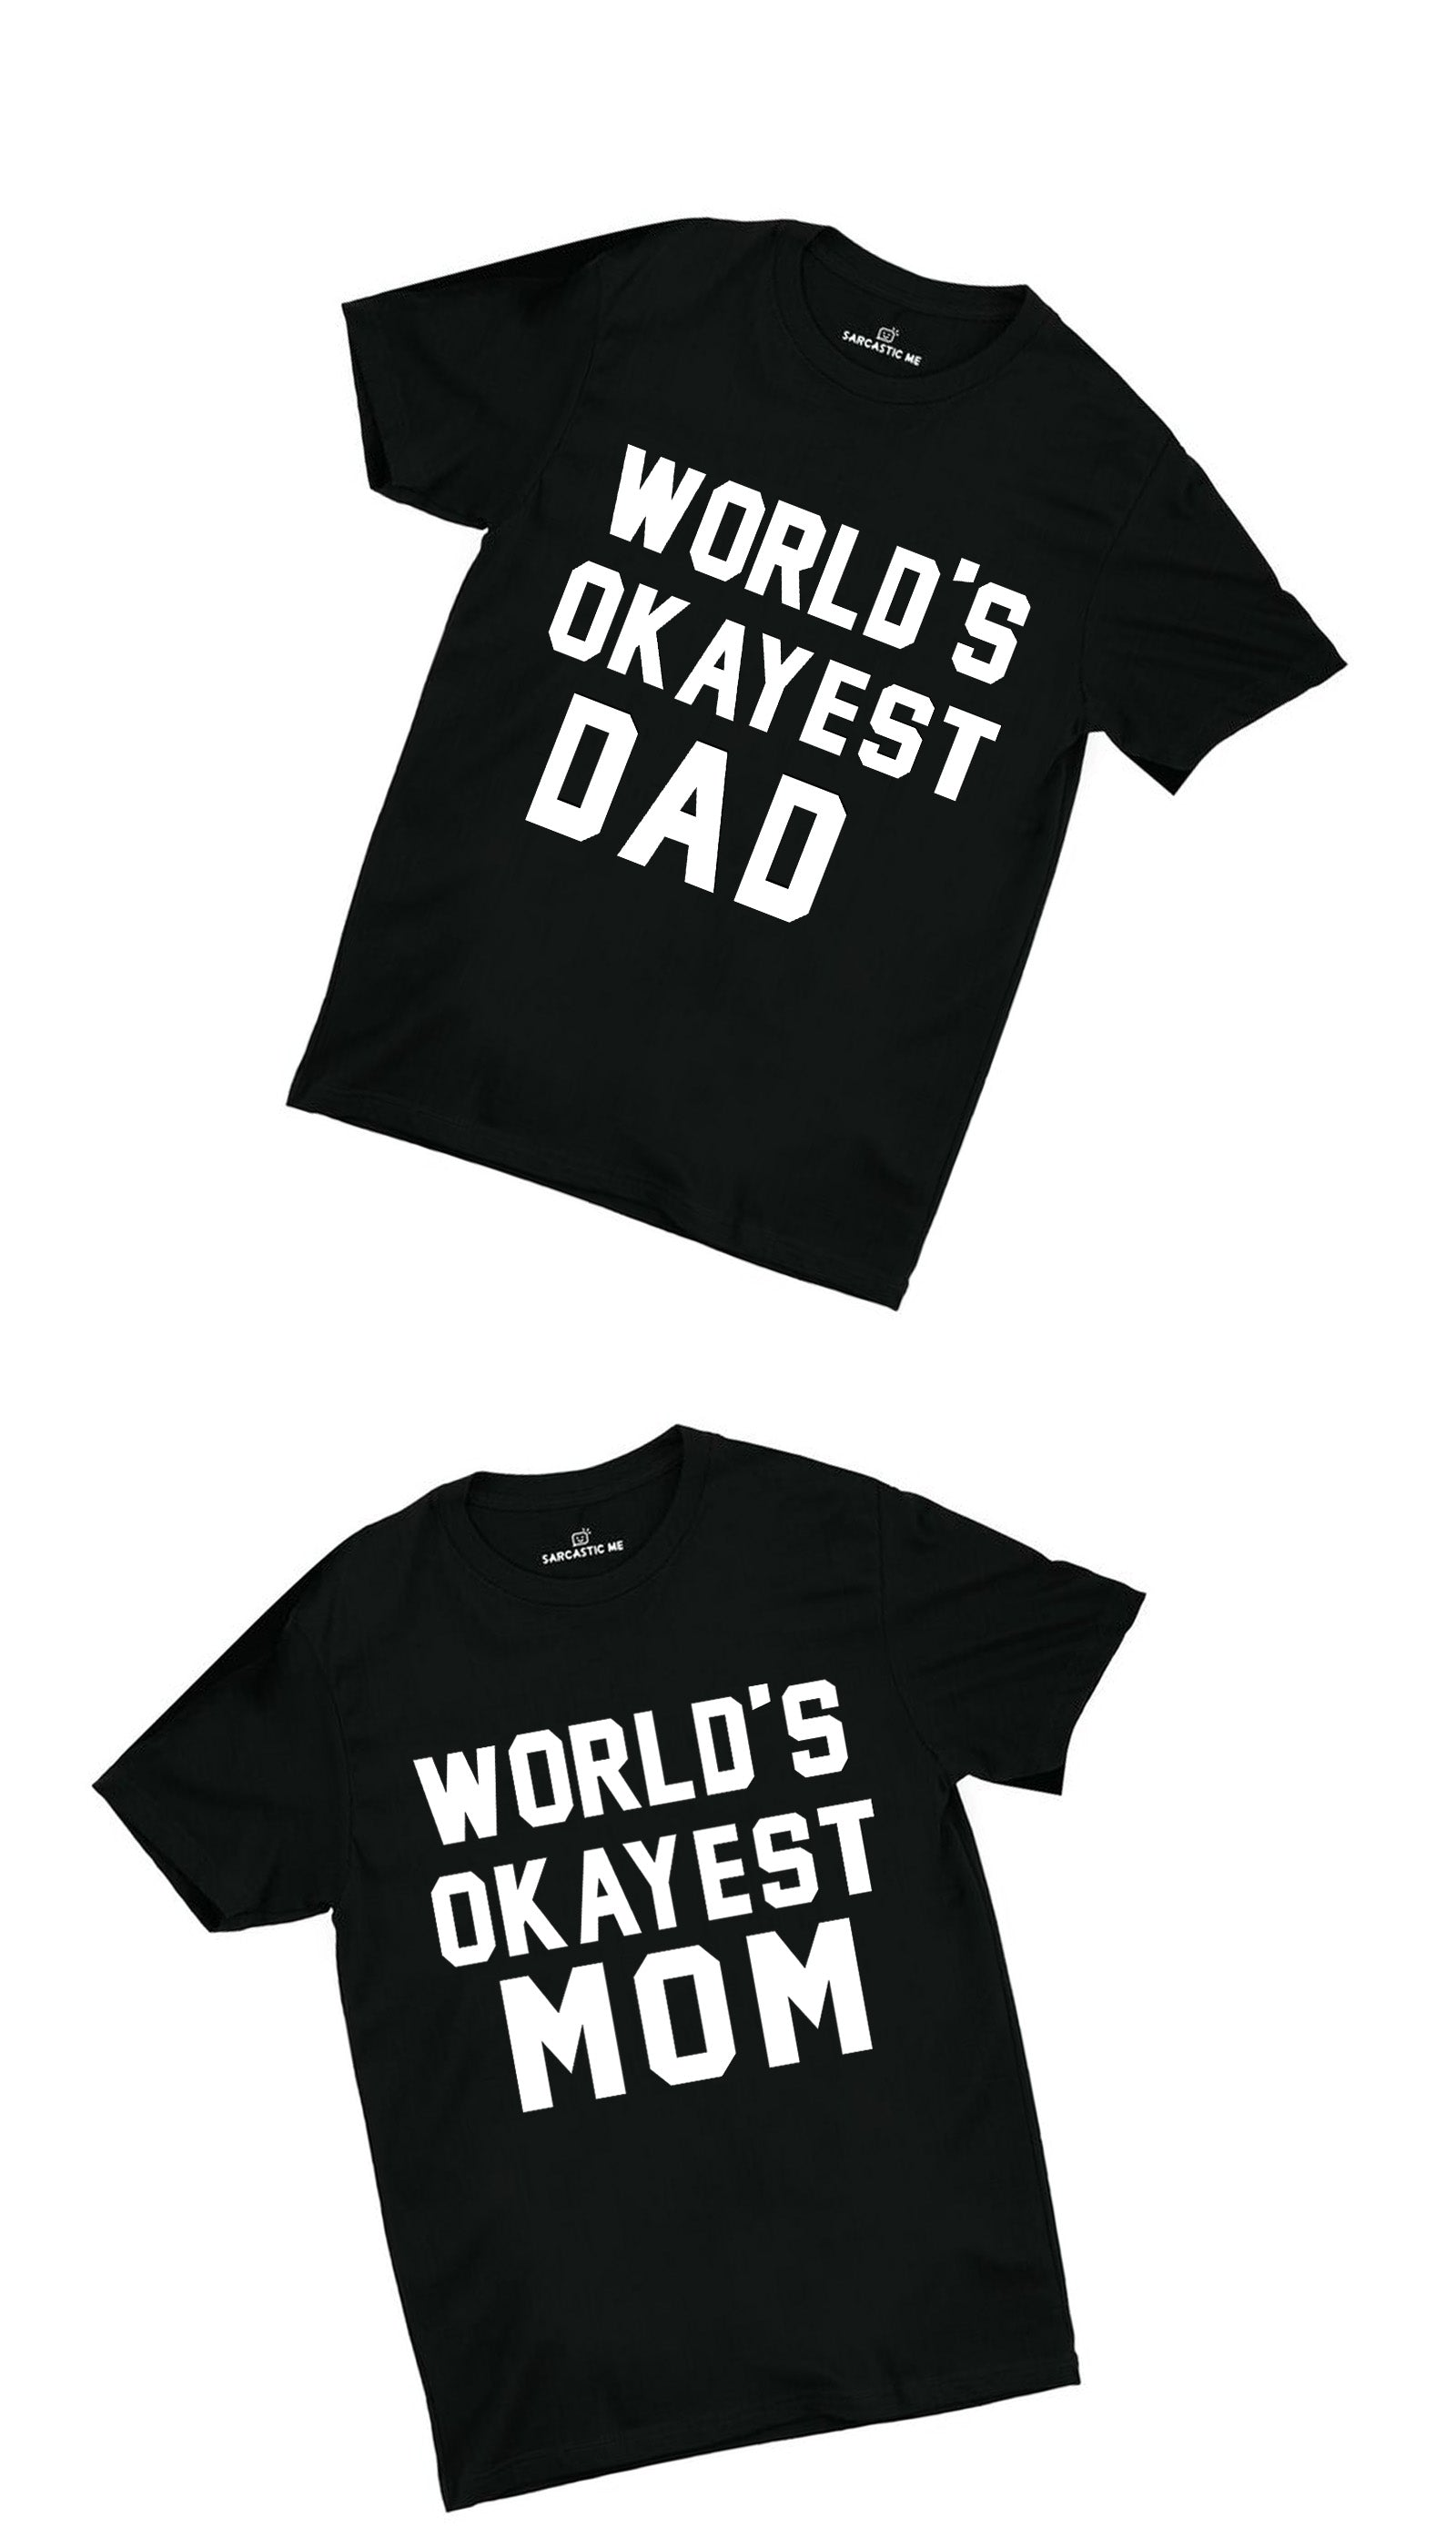 World's Okayest Dad & Mom Black Couples Unisex T-shirt Set | Sarcastic ME